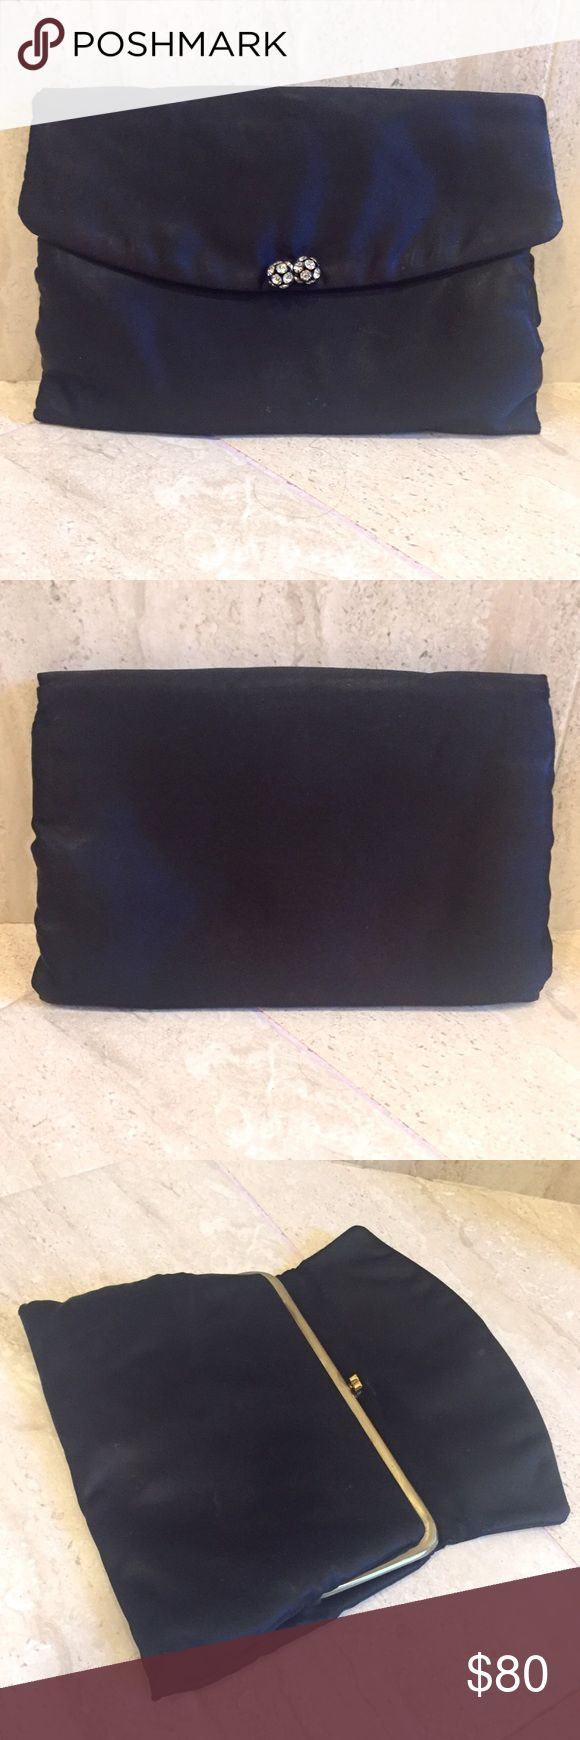 """Satin Formal Clutch This satin black clutch is a gorgeous addition to your formal attire. Two simple crystal ball shape additions to the front make it a very classy look. Inside there's a mini coin purse attached. Great condition.  9"""" long at bottom and 8"""" at top. Height is about 6"""". Bags Clutches & Wristlets"""